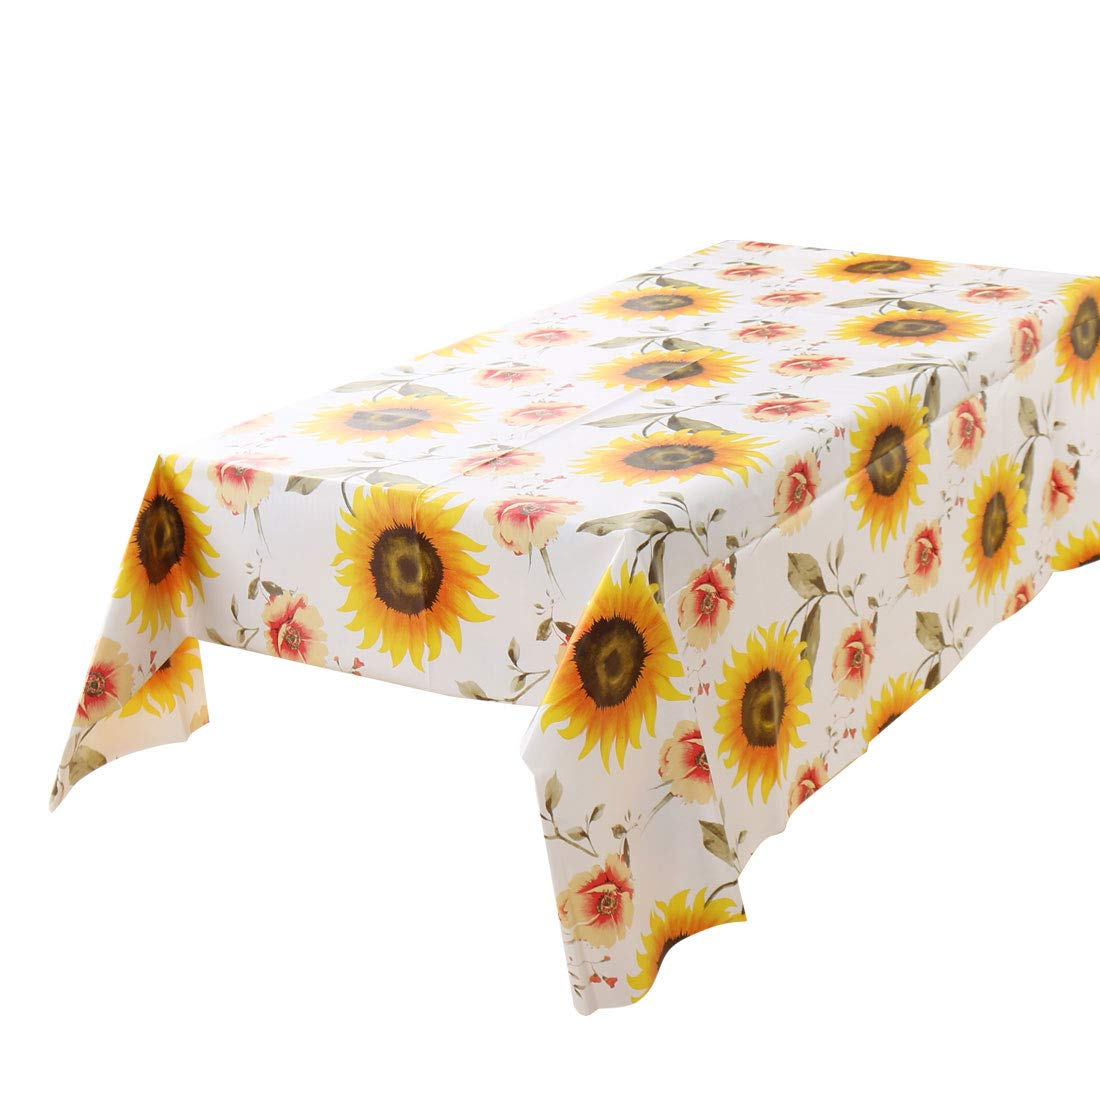 uxcell Vinyl Rectangle Table Cover Wipe Clean PVC Tablecloth Oil-Proof/Waterproof Stain-Resistant - 55 x 40 Inch (Sunflower Pattern)